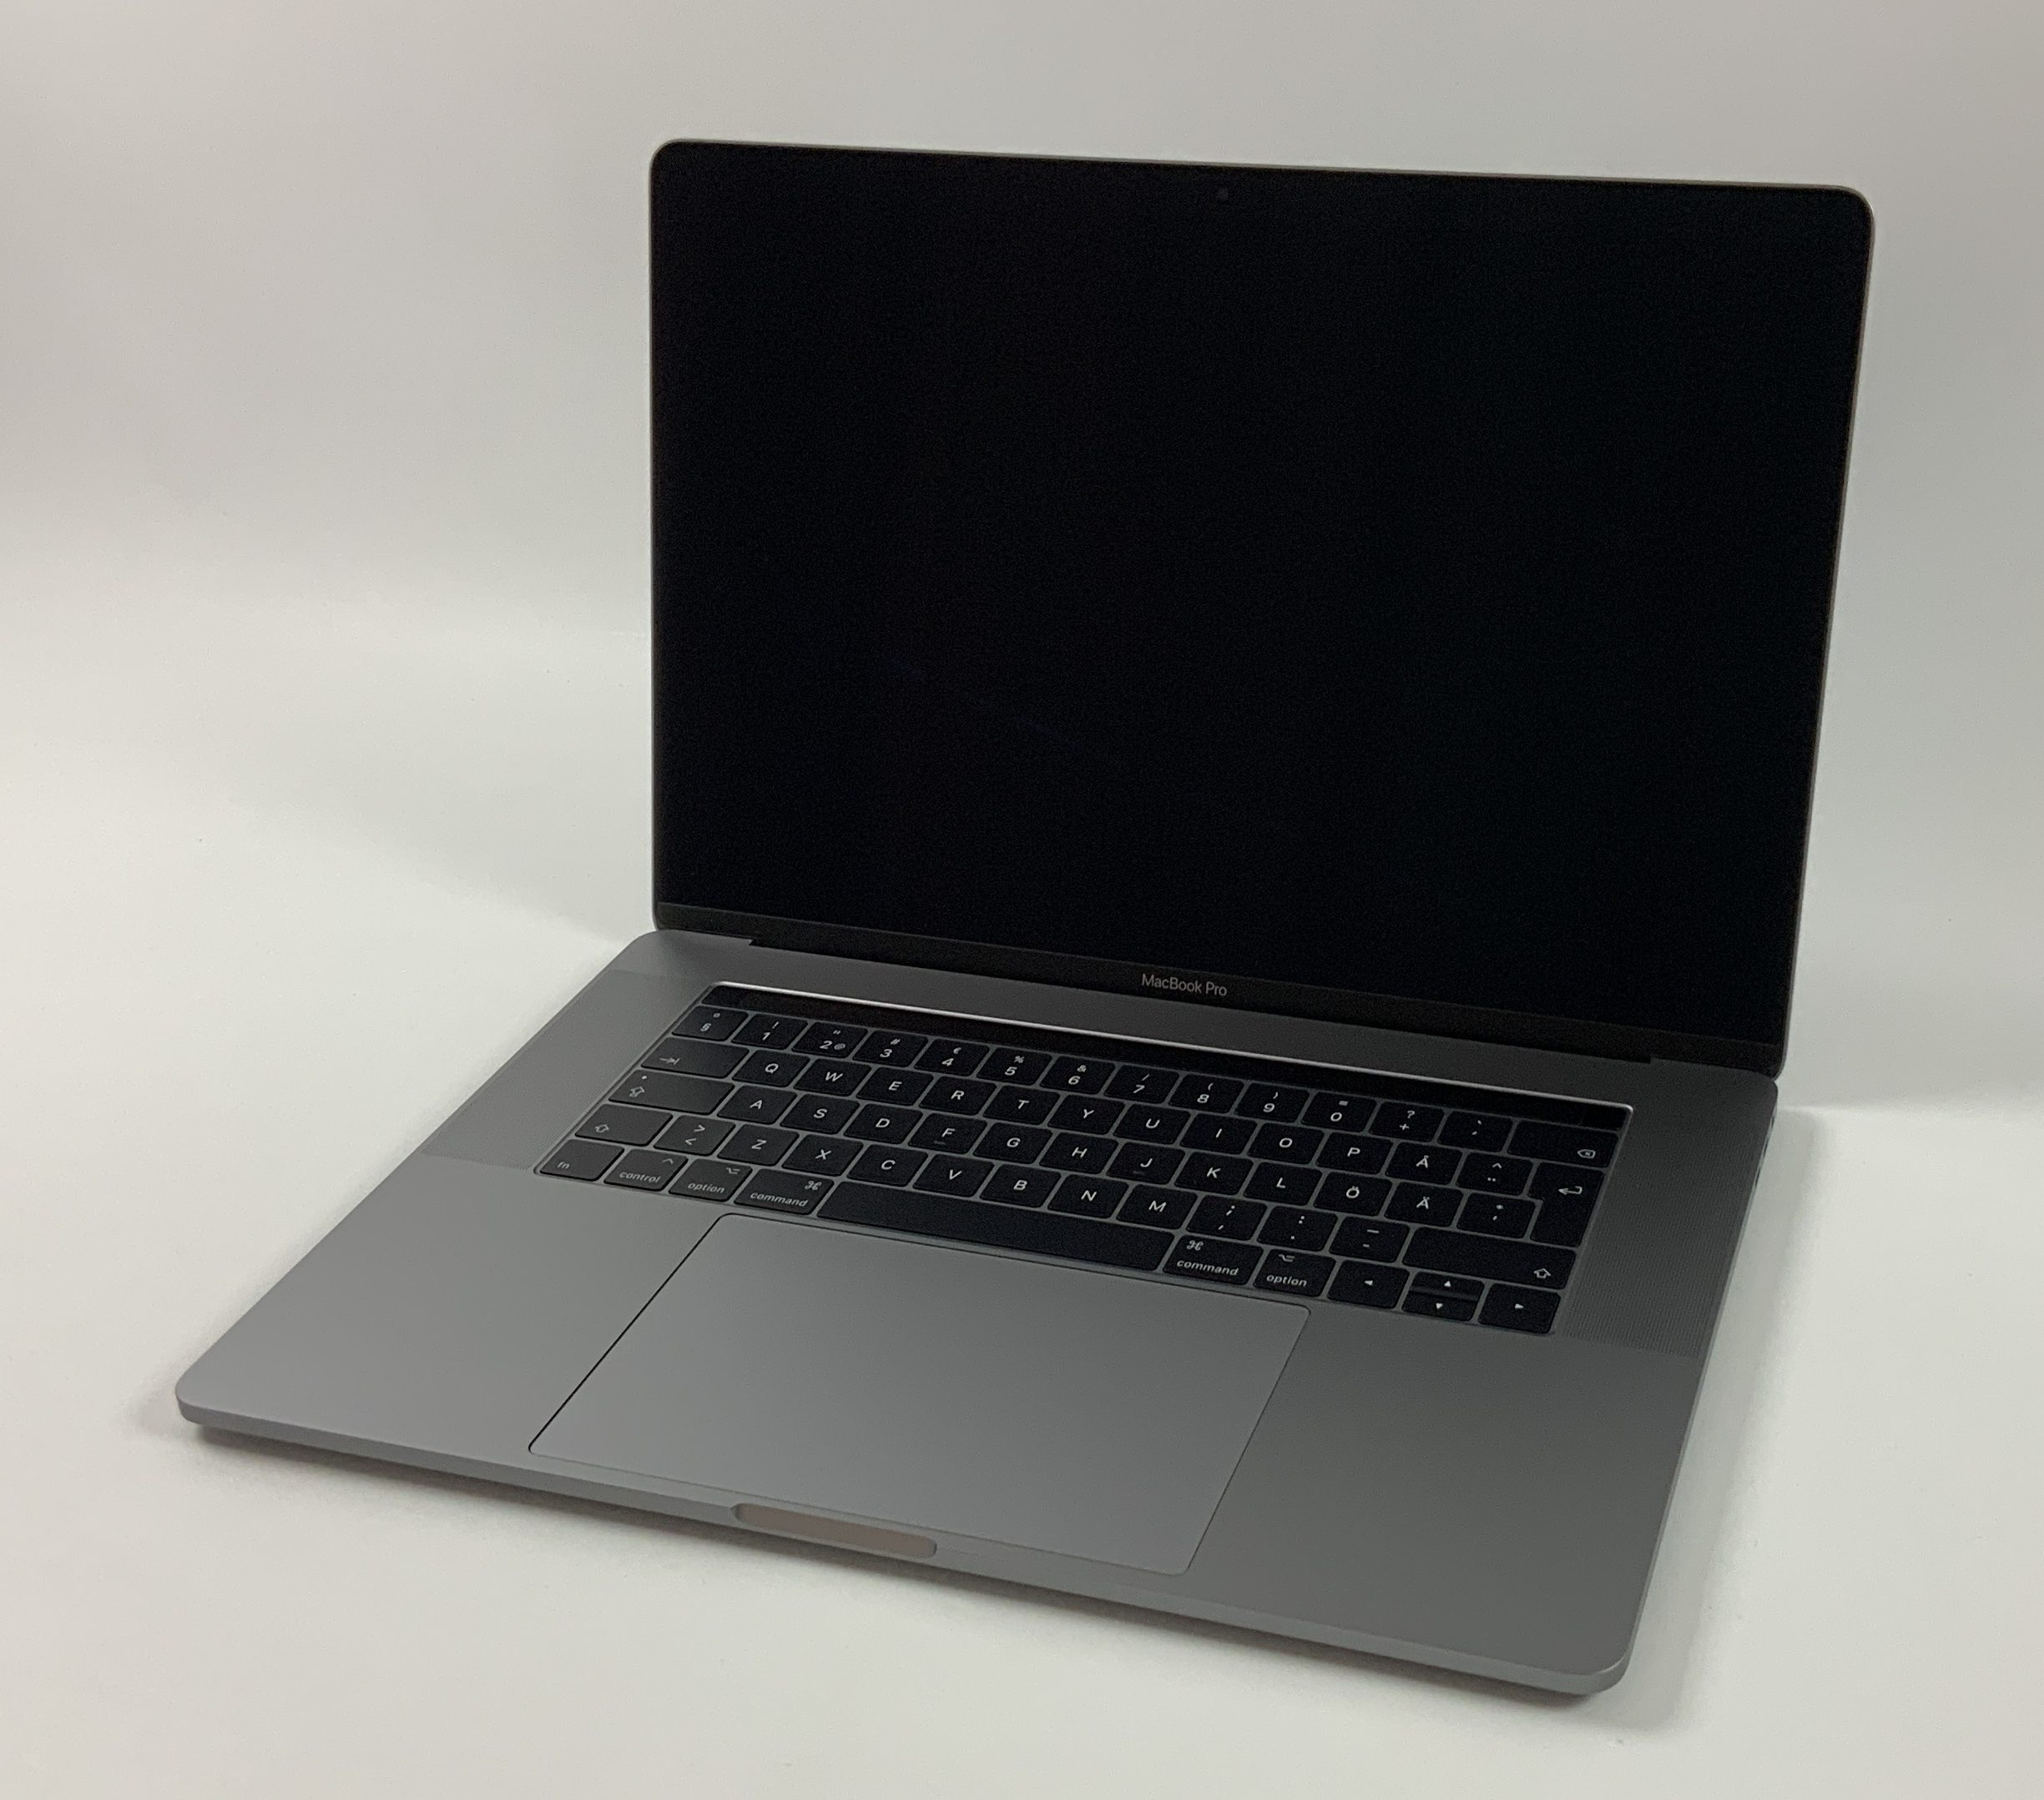 "MacBook Pro 15"" Touch Bar Late 2016 (Intel Quad-Core i7 2.6 GHz 16 GB RAM 256 GB SSD), Space Gray, Intel Quad-Core i7 2.6 GHz, 16 GB RAM, 256 GB SSD, obraz 1"